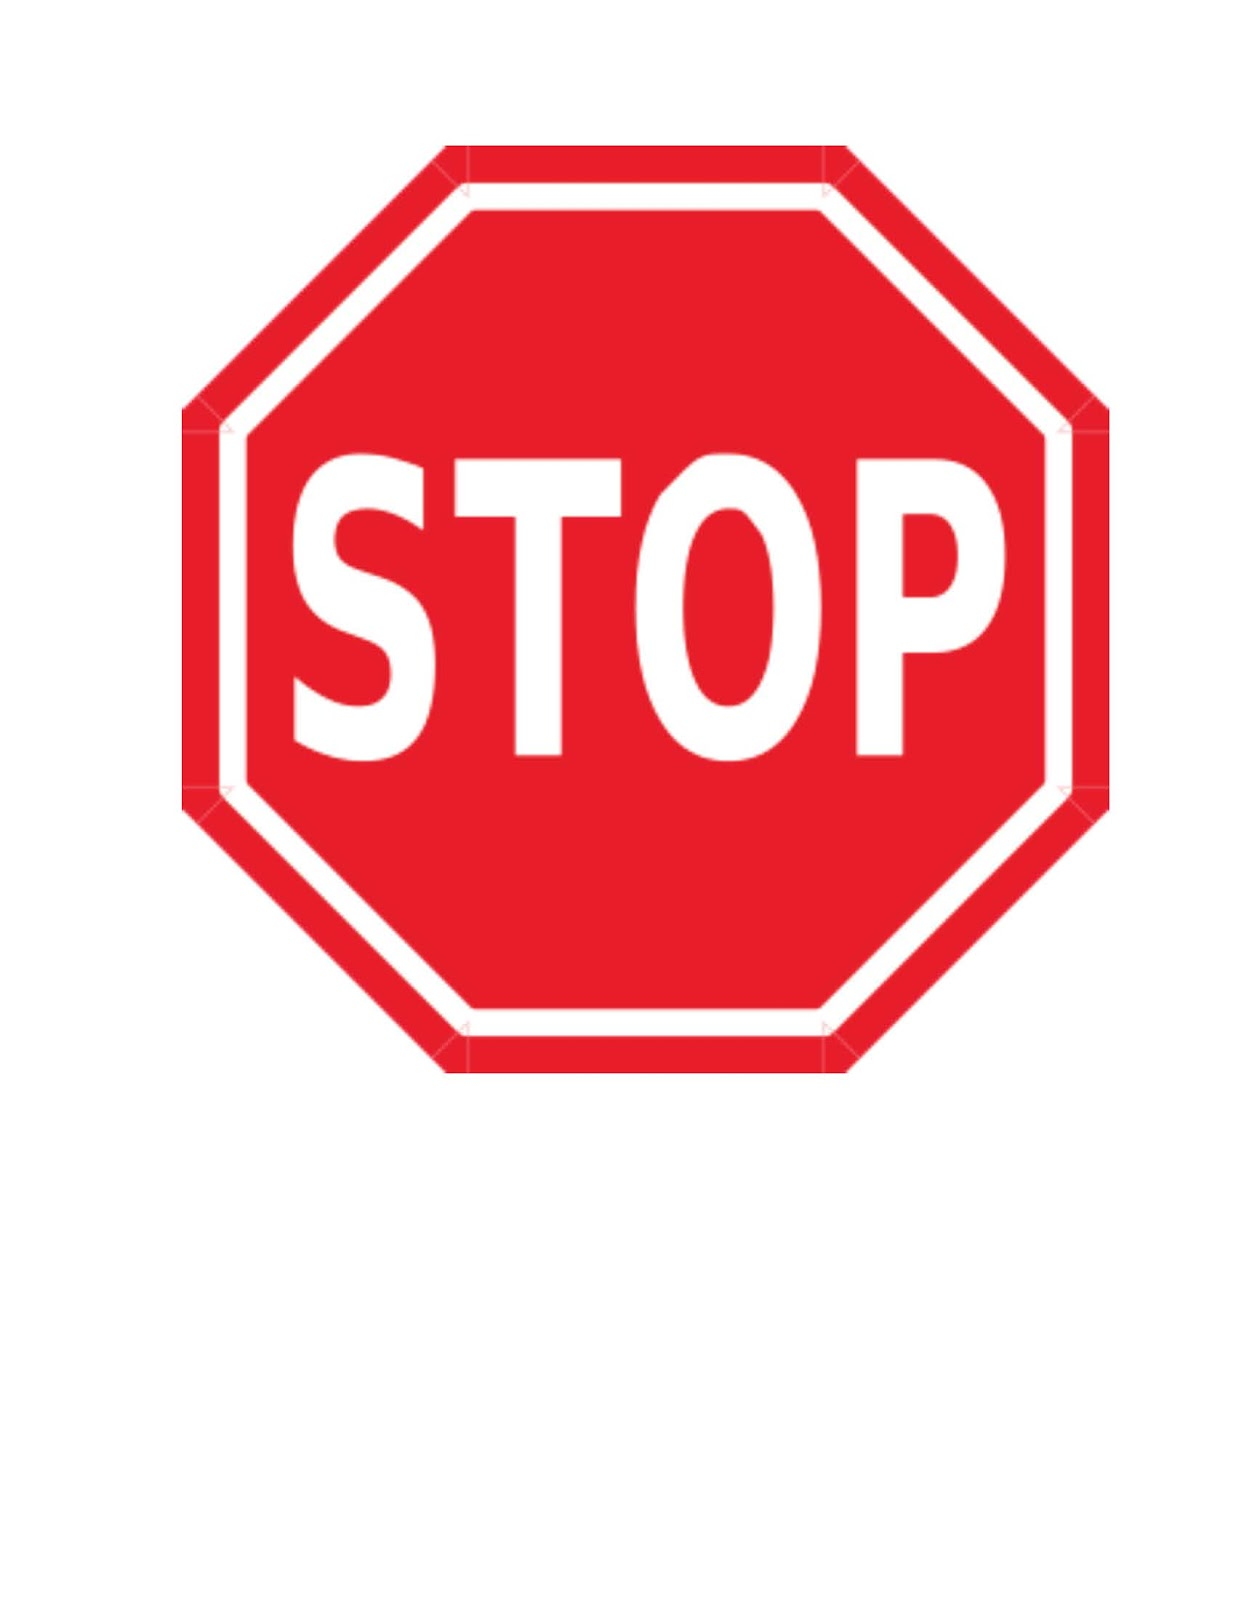 Clipart Of A Stop Sign.